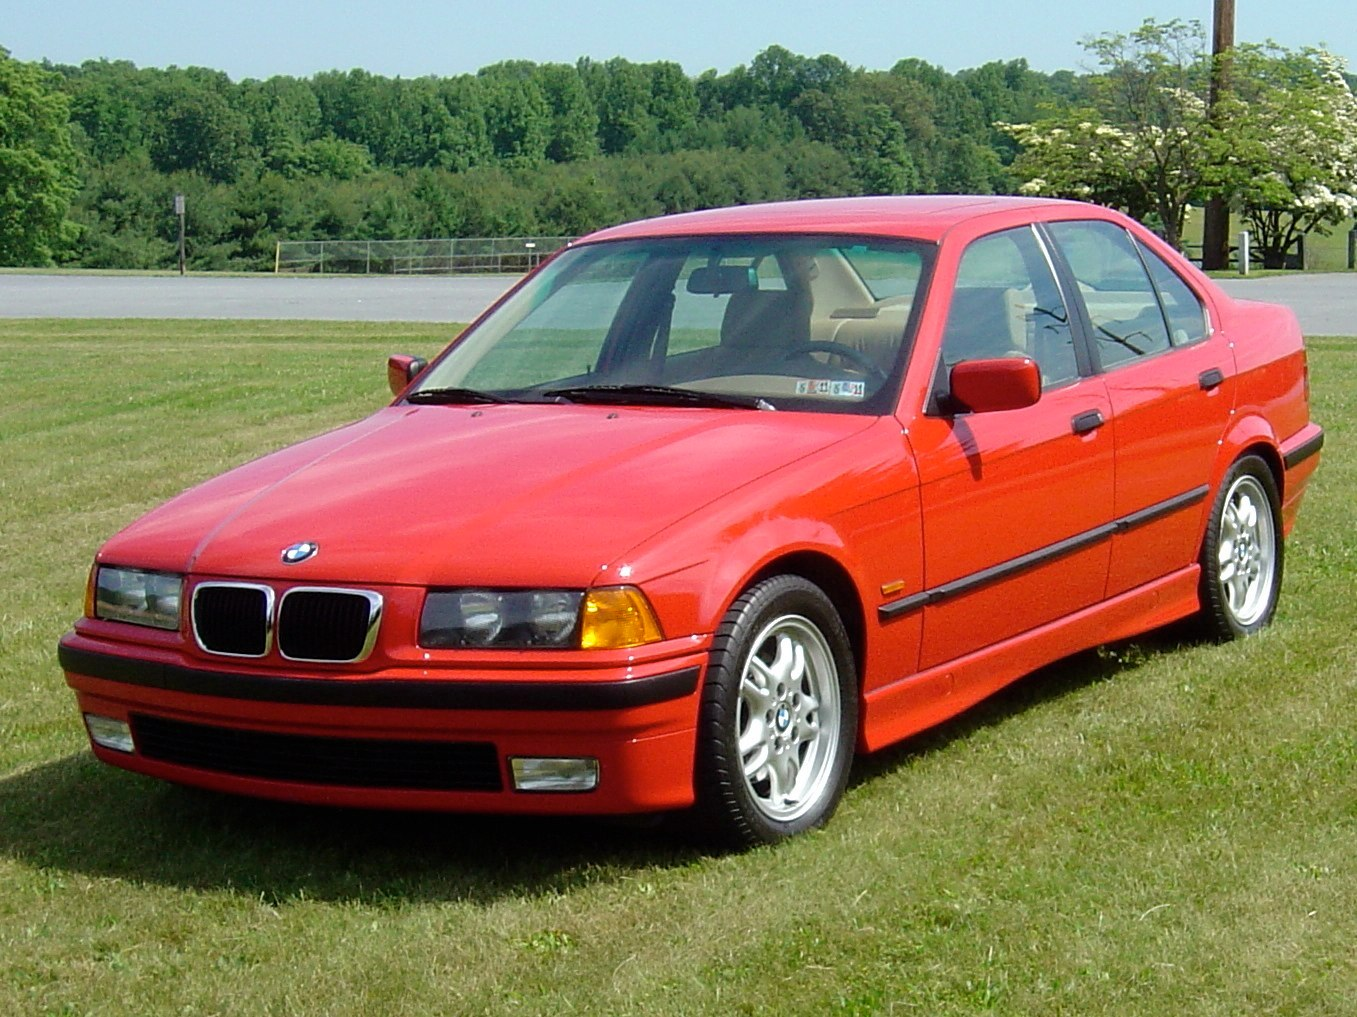 Bmw 318i 1997 Review Amazing Pictures And Images Look